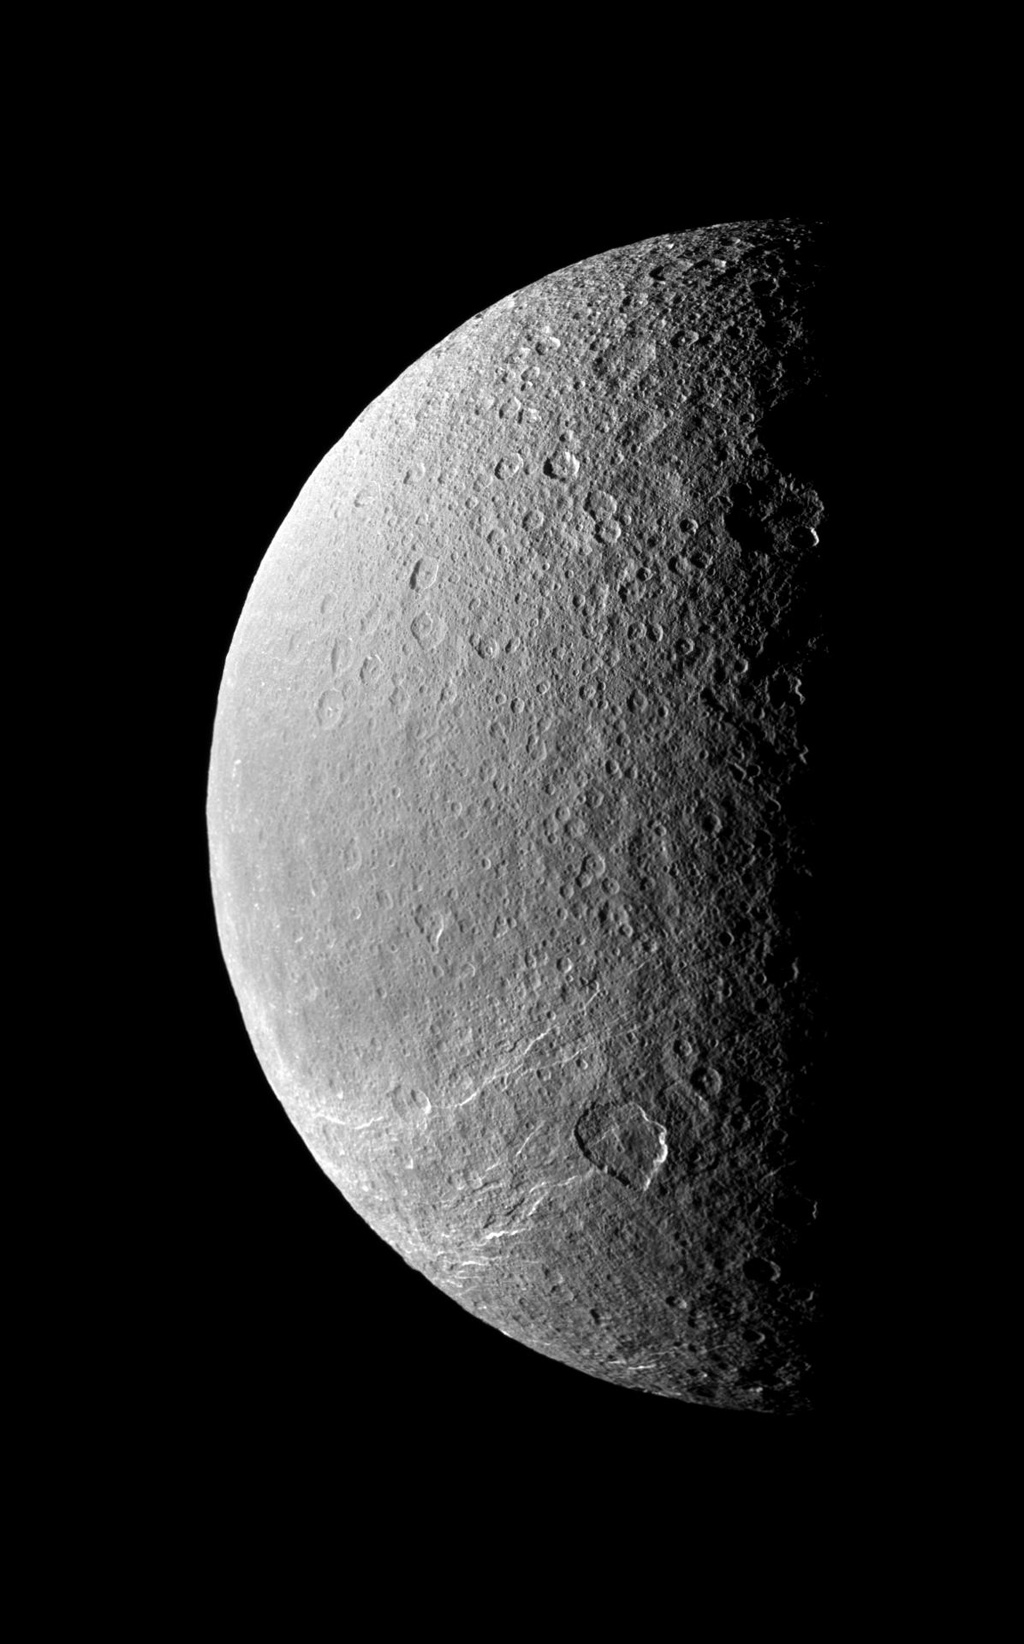 The terminator between light and dark throws Rhea's cratered surface into stark relief while the southern hemisphere is scored by bright icy cliffs. This image was taken in visible light with NASA's Cassini spacecraft's narrow-angle camera.